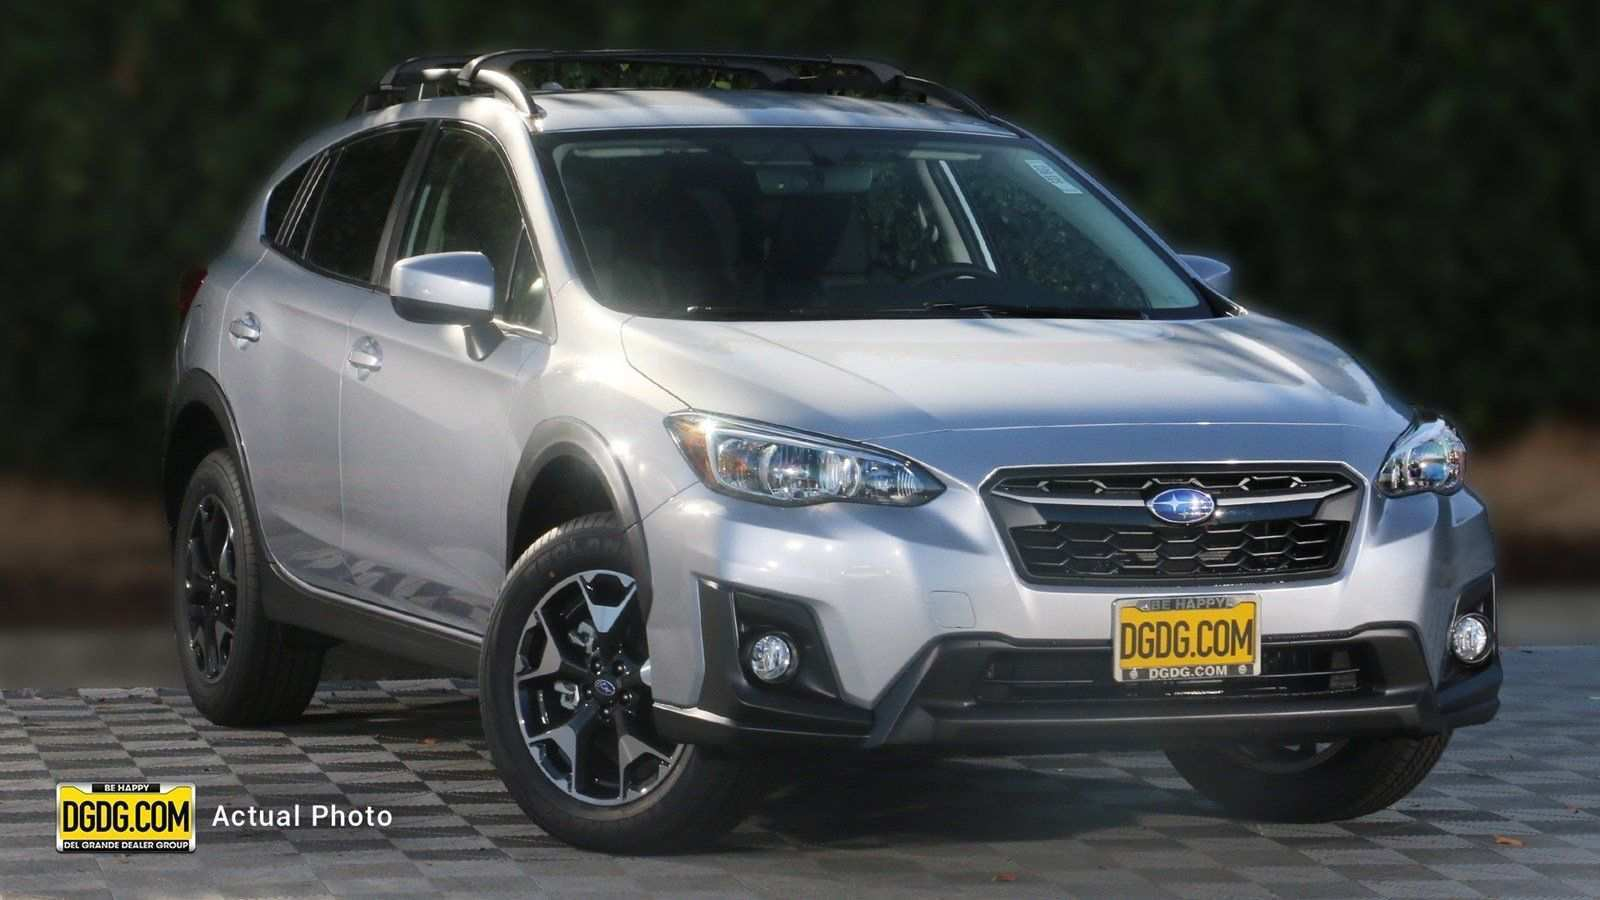 56 Great 2019 Subaru Crosstrek Review Price And Release Date Redesign and Concept for 2019 Subaru Crosstrek Review Price And Release Date